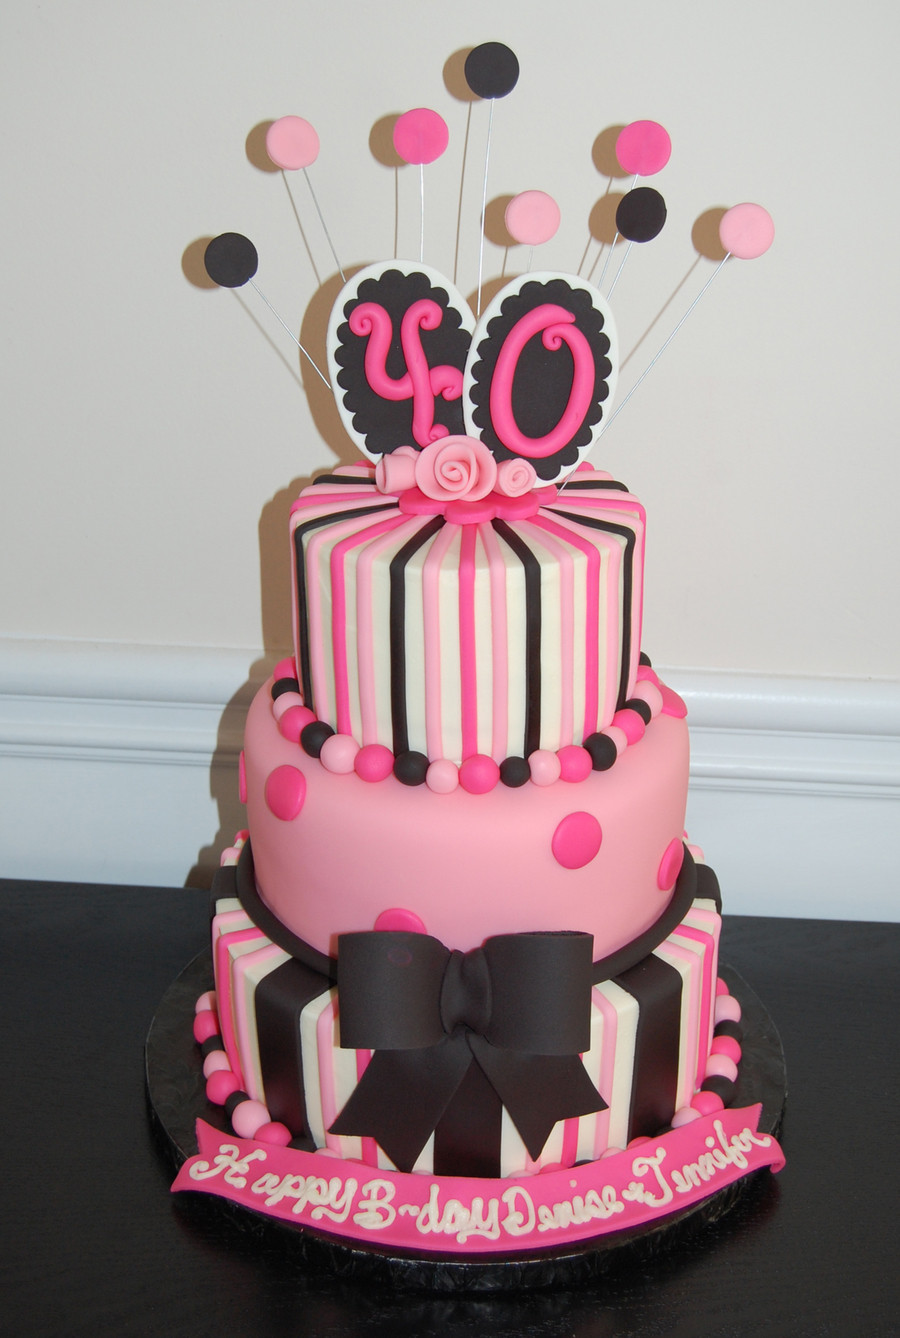 40Th Birthday Cake  40Th Birthday Cake Pink And Black CakeCentral